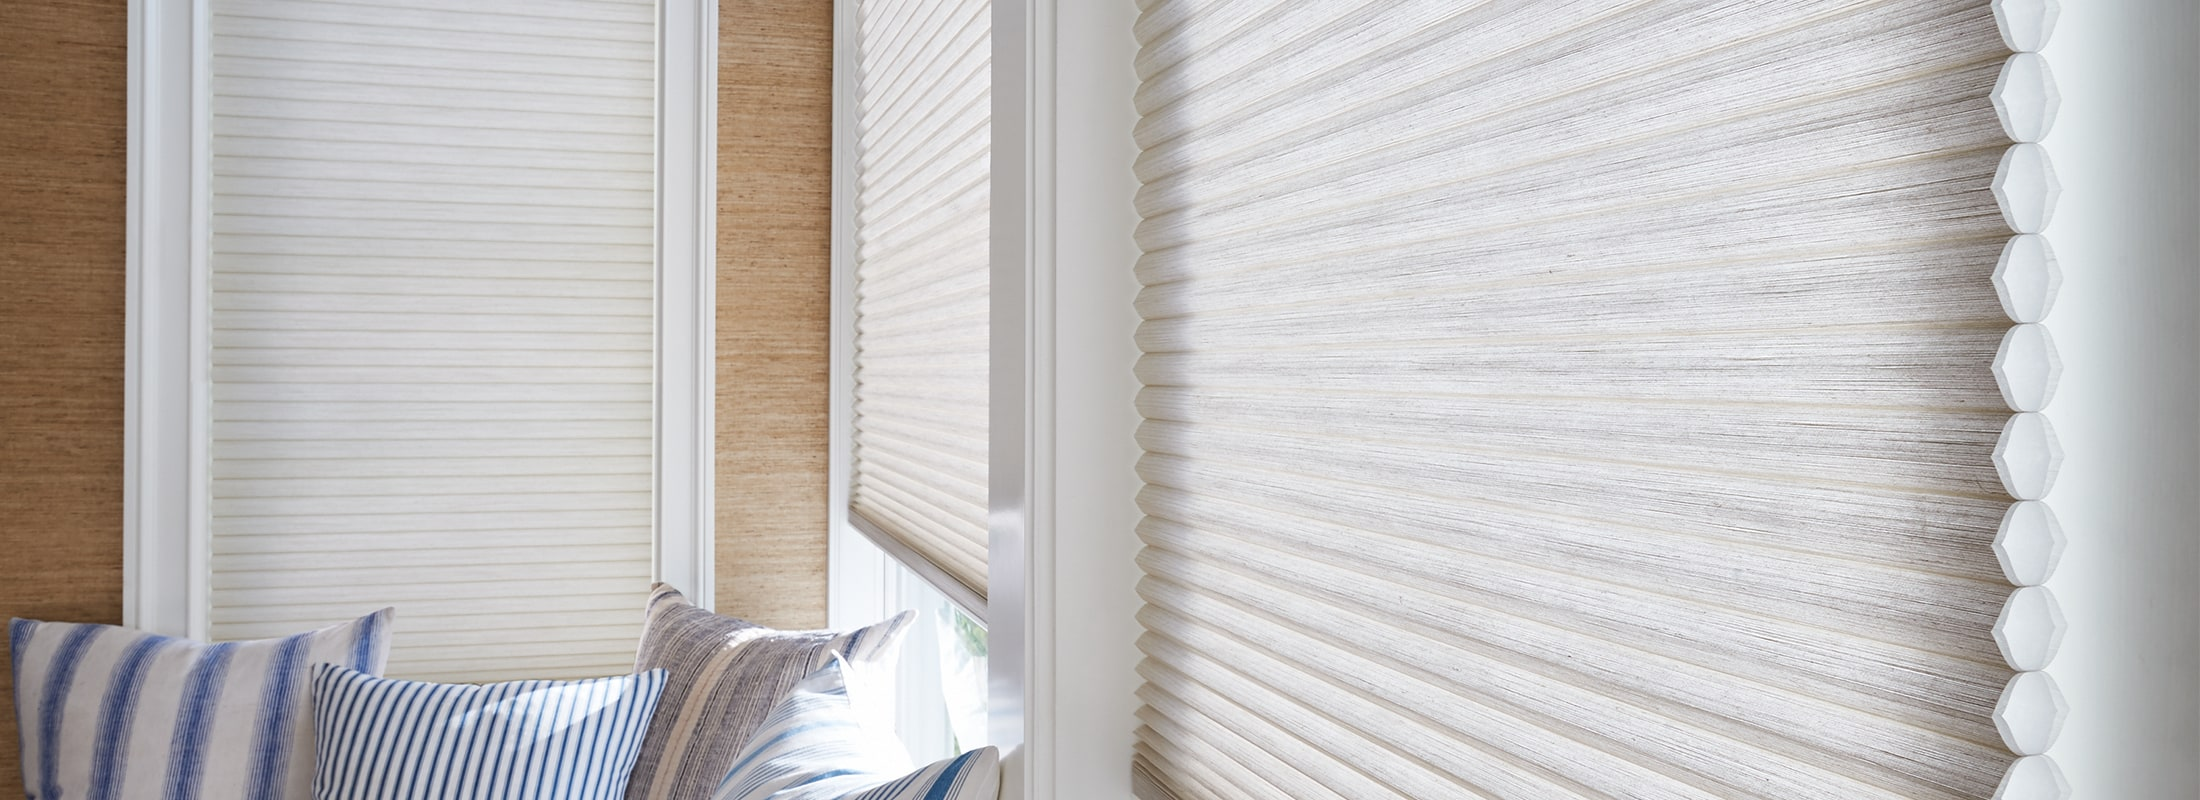 honeycomb shades cellular shades in architella alexa desert sands - duette with closeup ... NHNEXUI